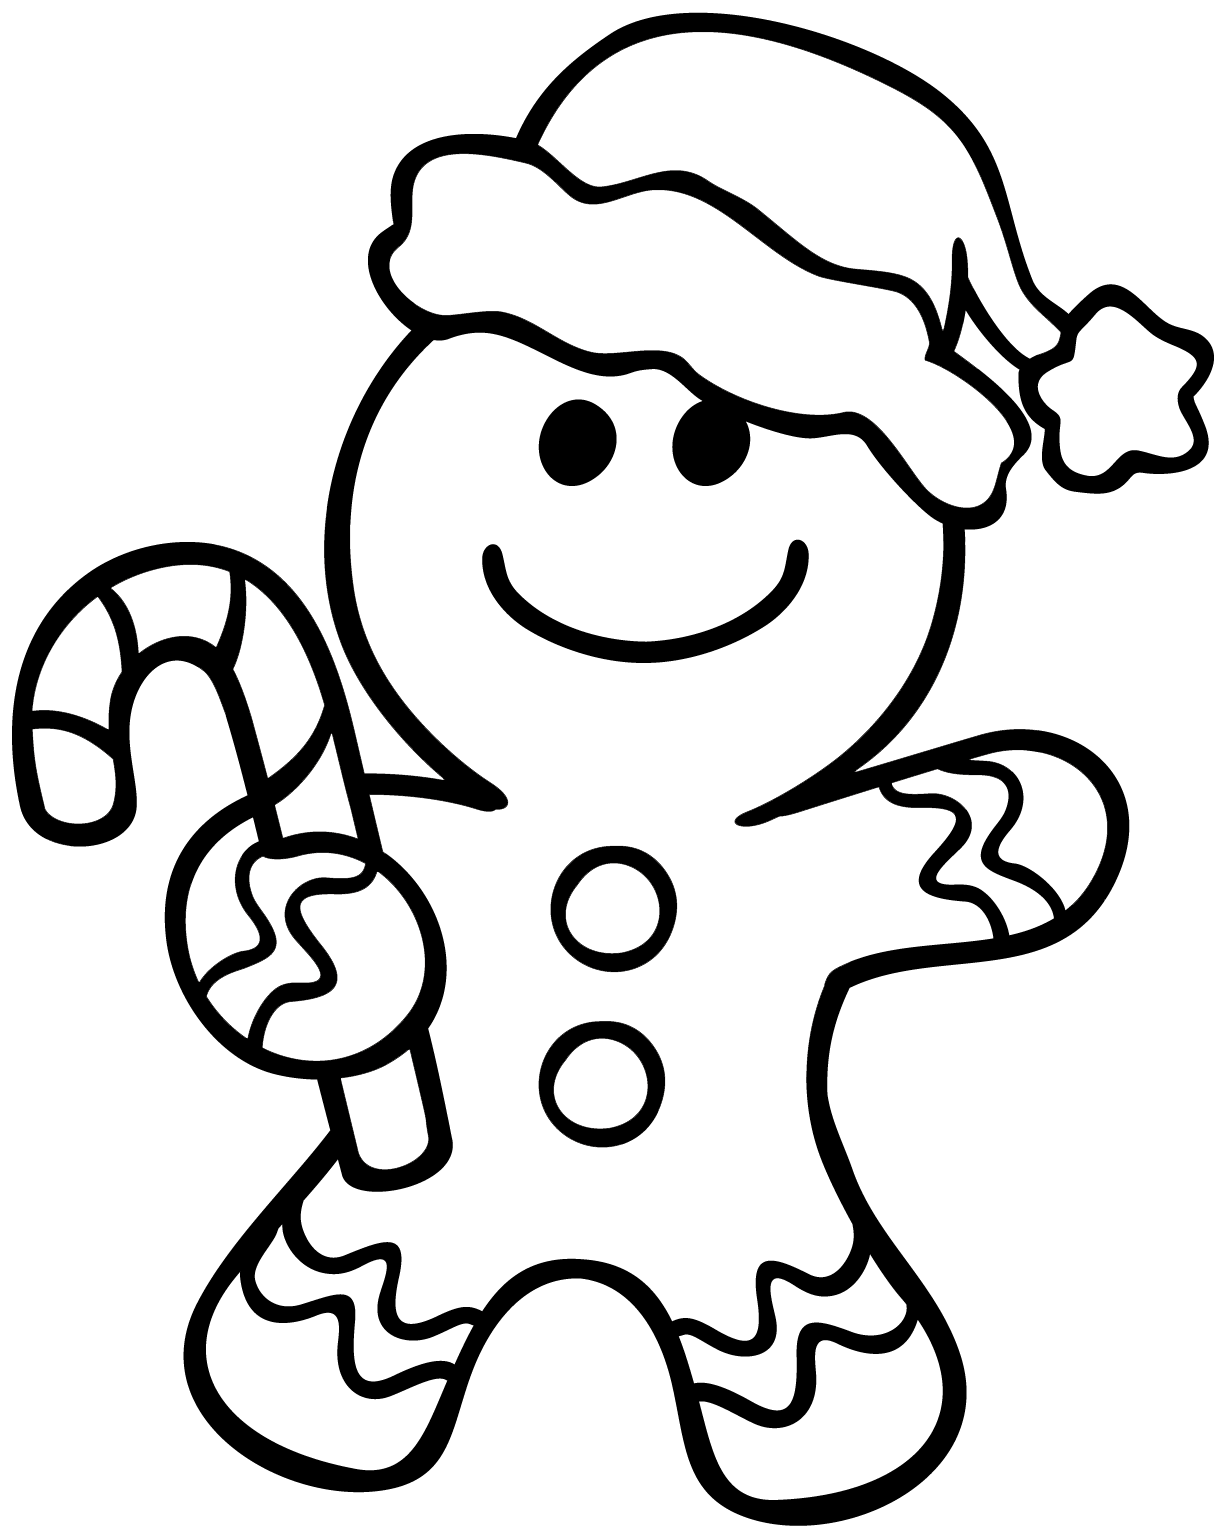 1228x1540 Gingerbread Man Coloring Page